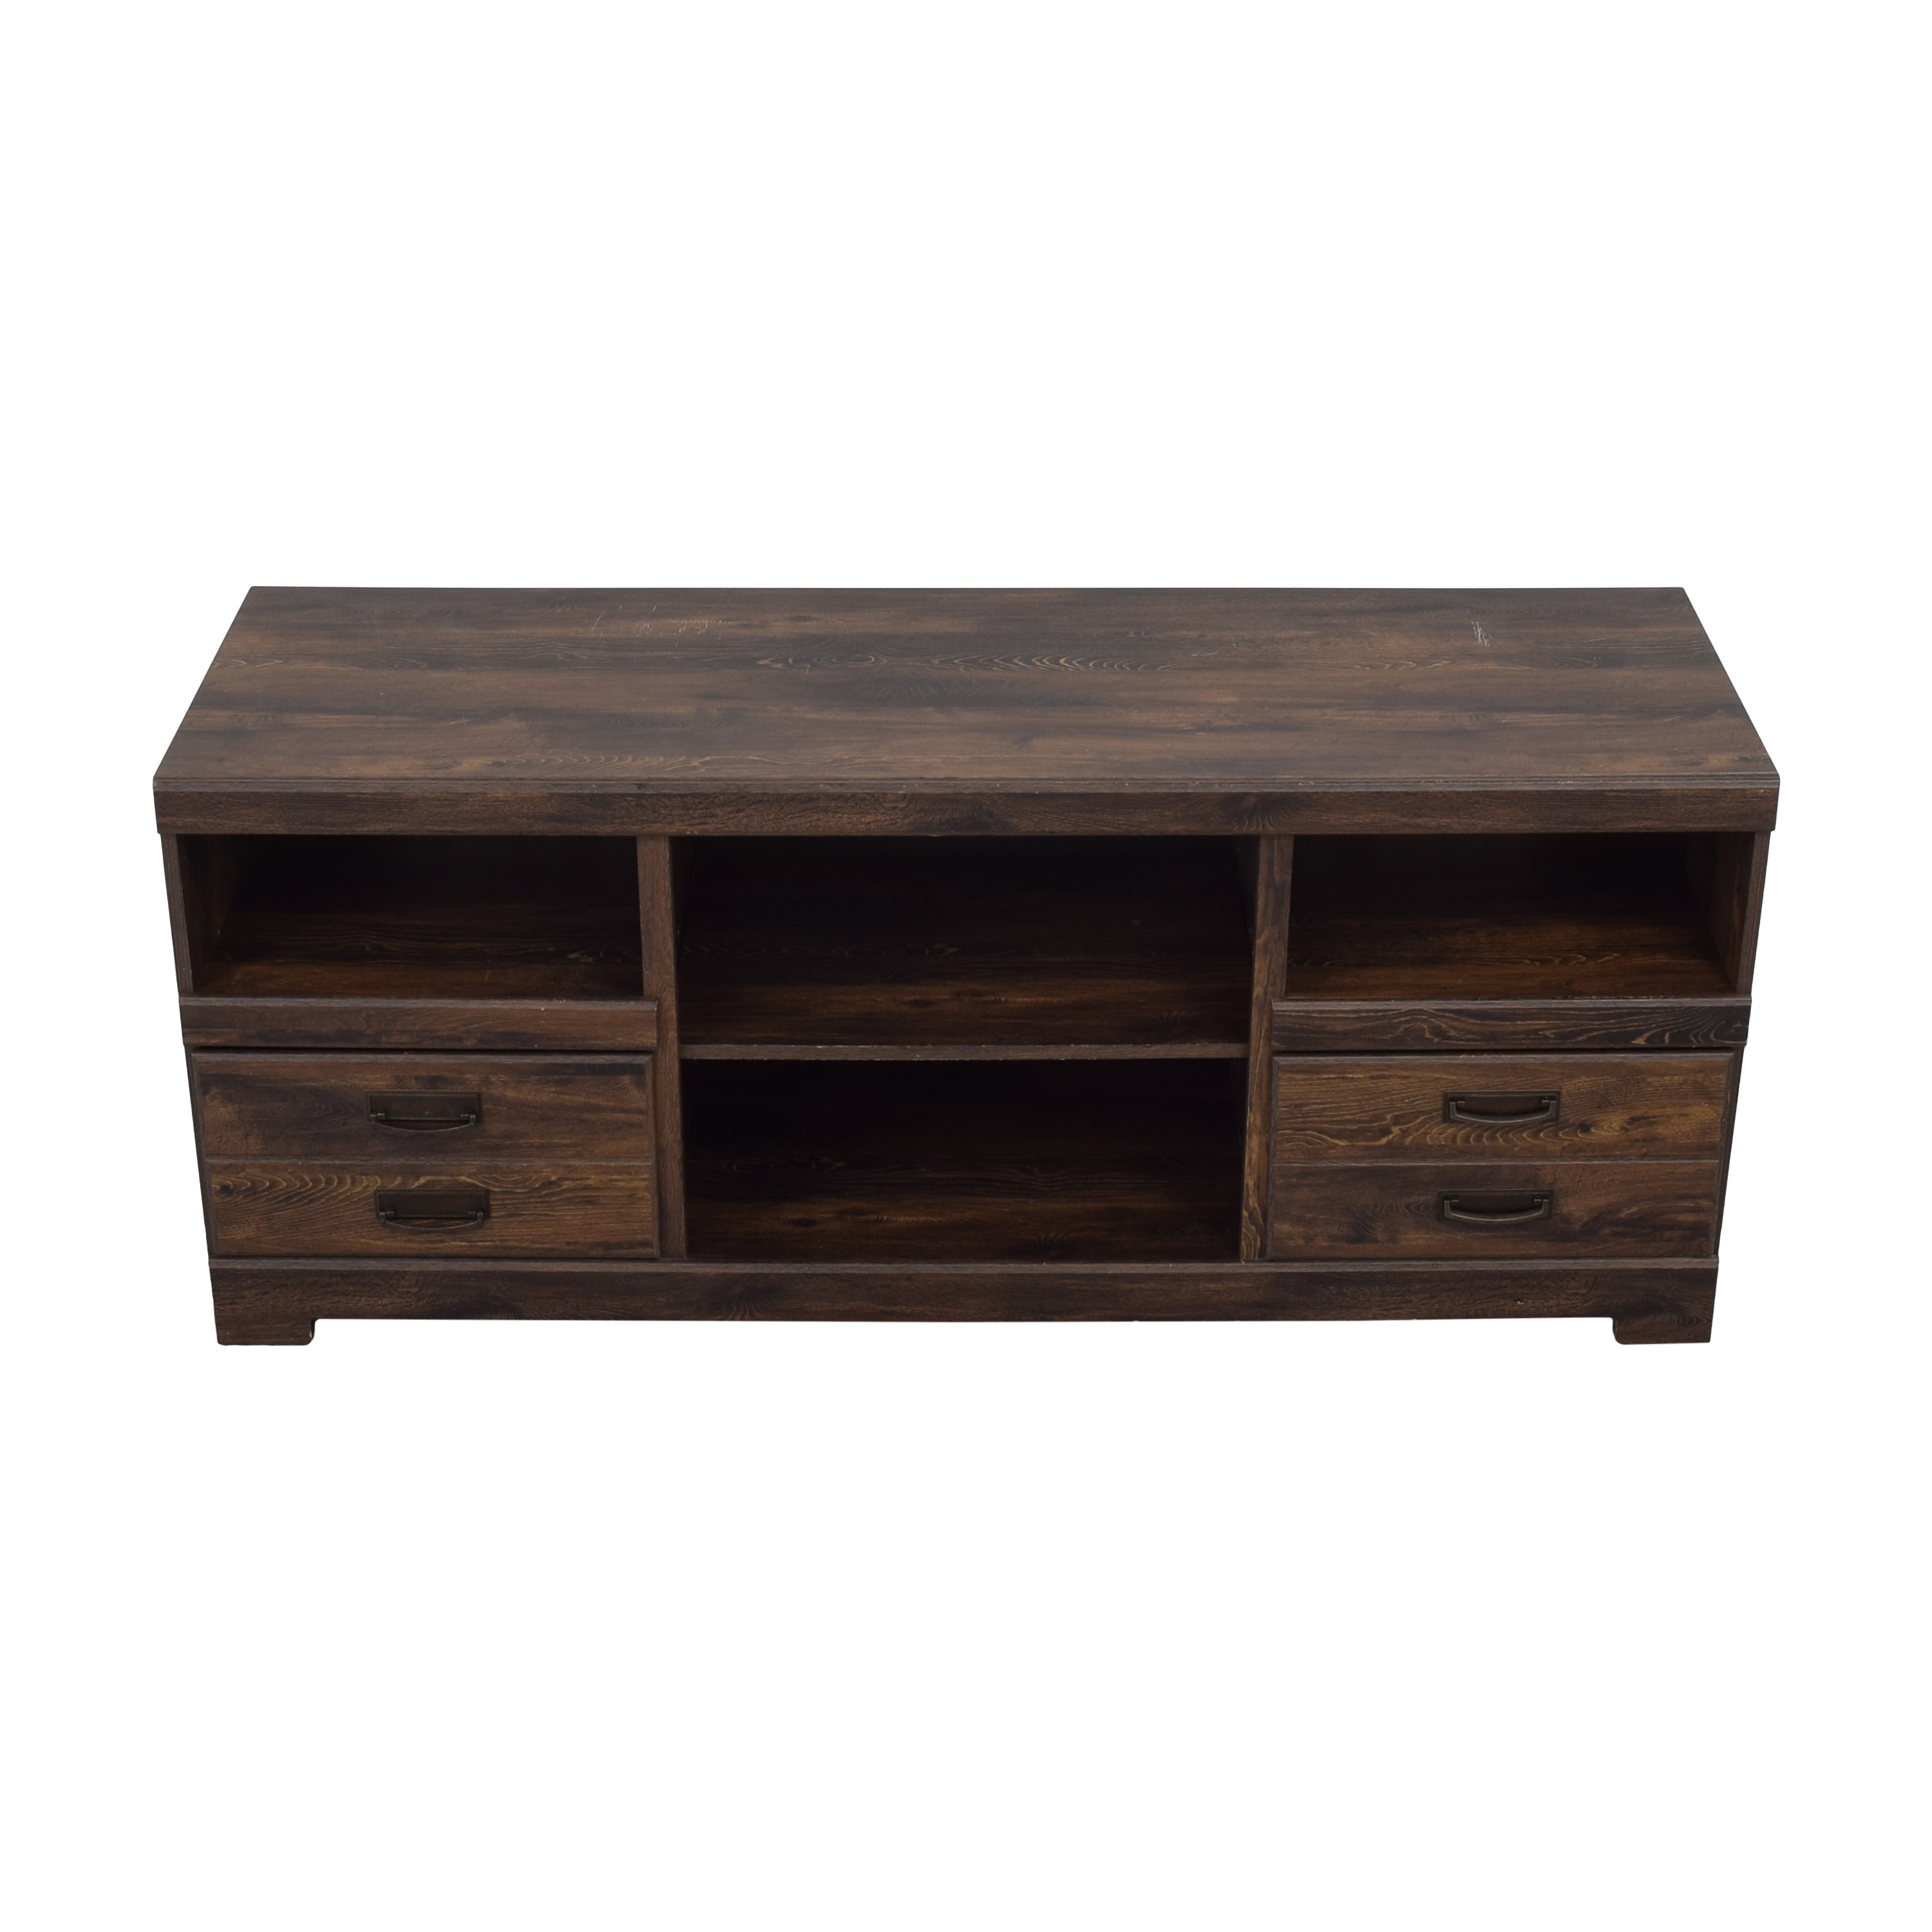 Ashley Furniture Ashley Furniture Media Console with Two Drawers ct